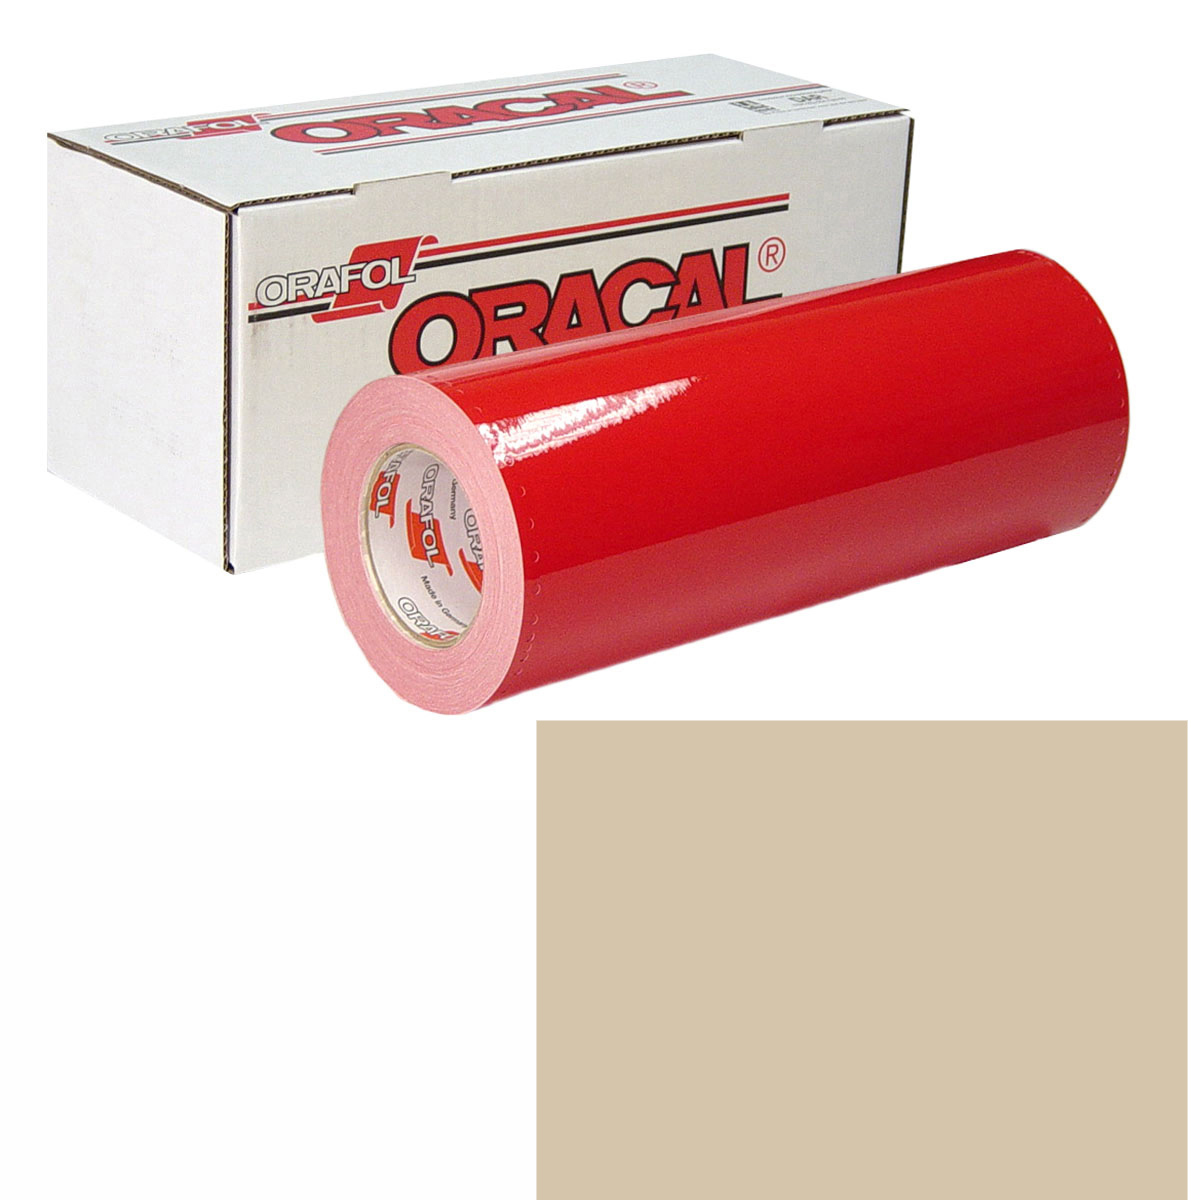 ORACAL 951 Unp 48In X 50Yd 816 Papyrus